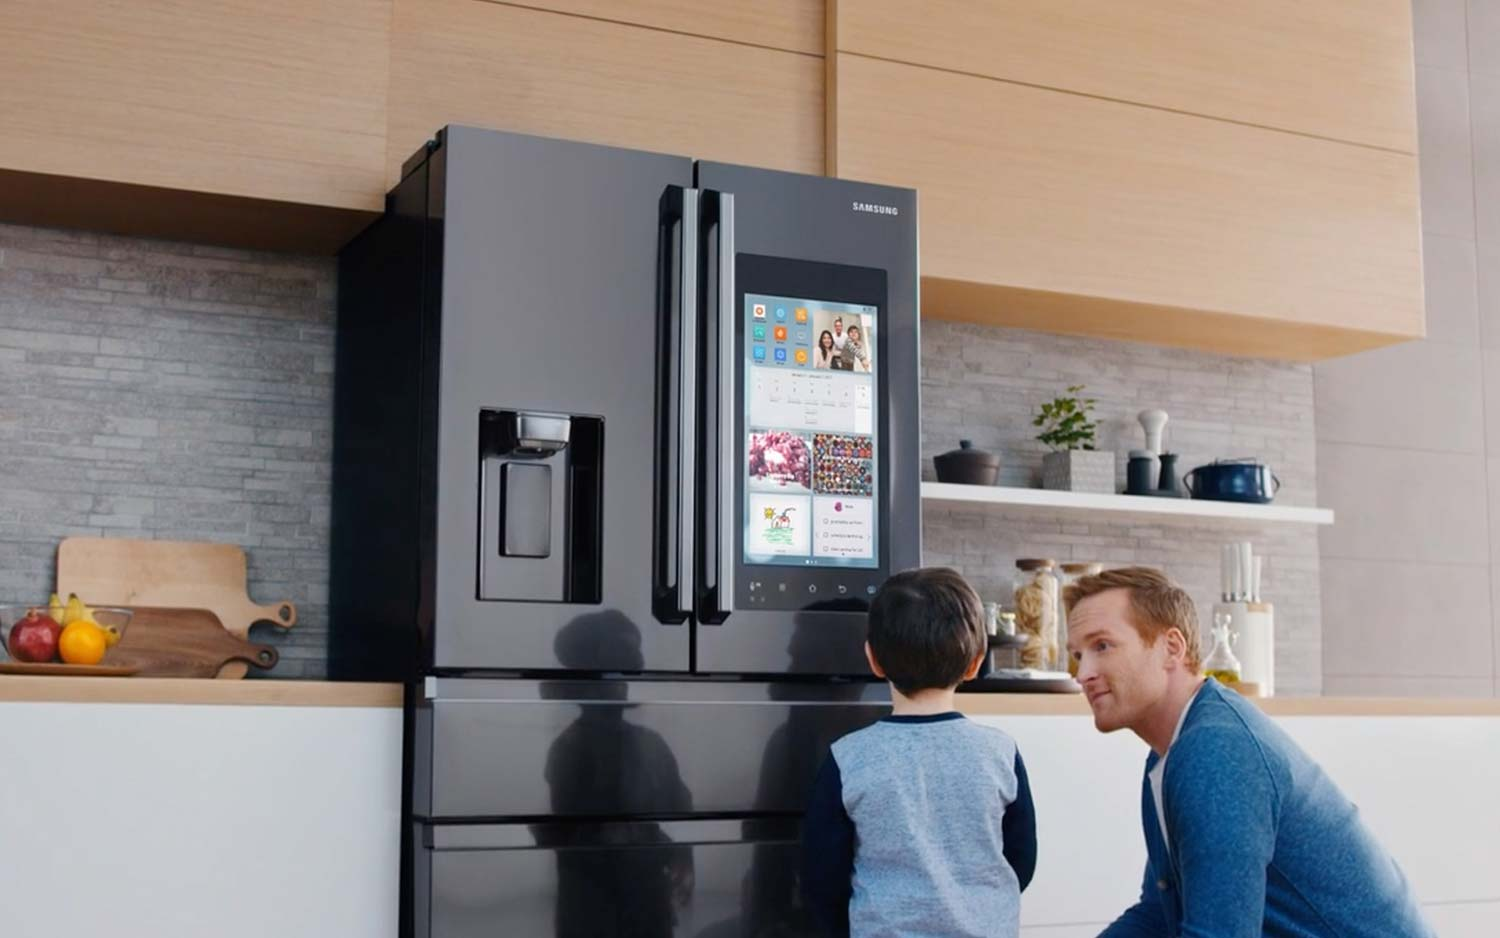 A Fridge Too Far The Smart Appliances That Cost A Grand More But May Only Last Two Years About Manchester